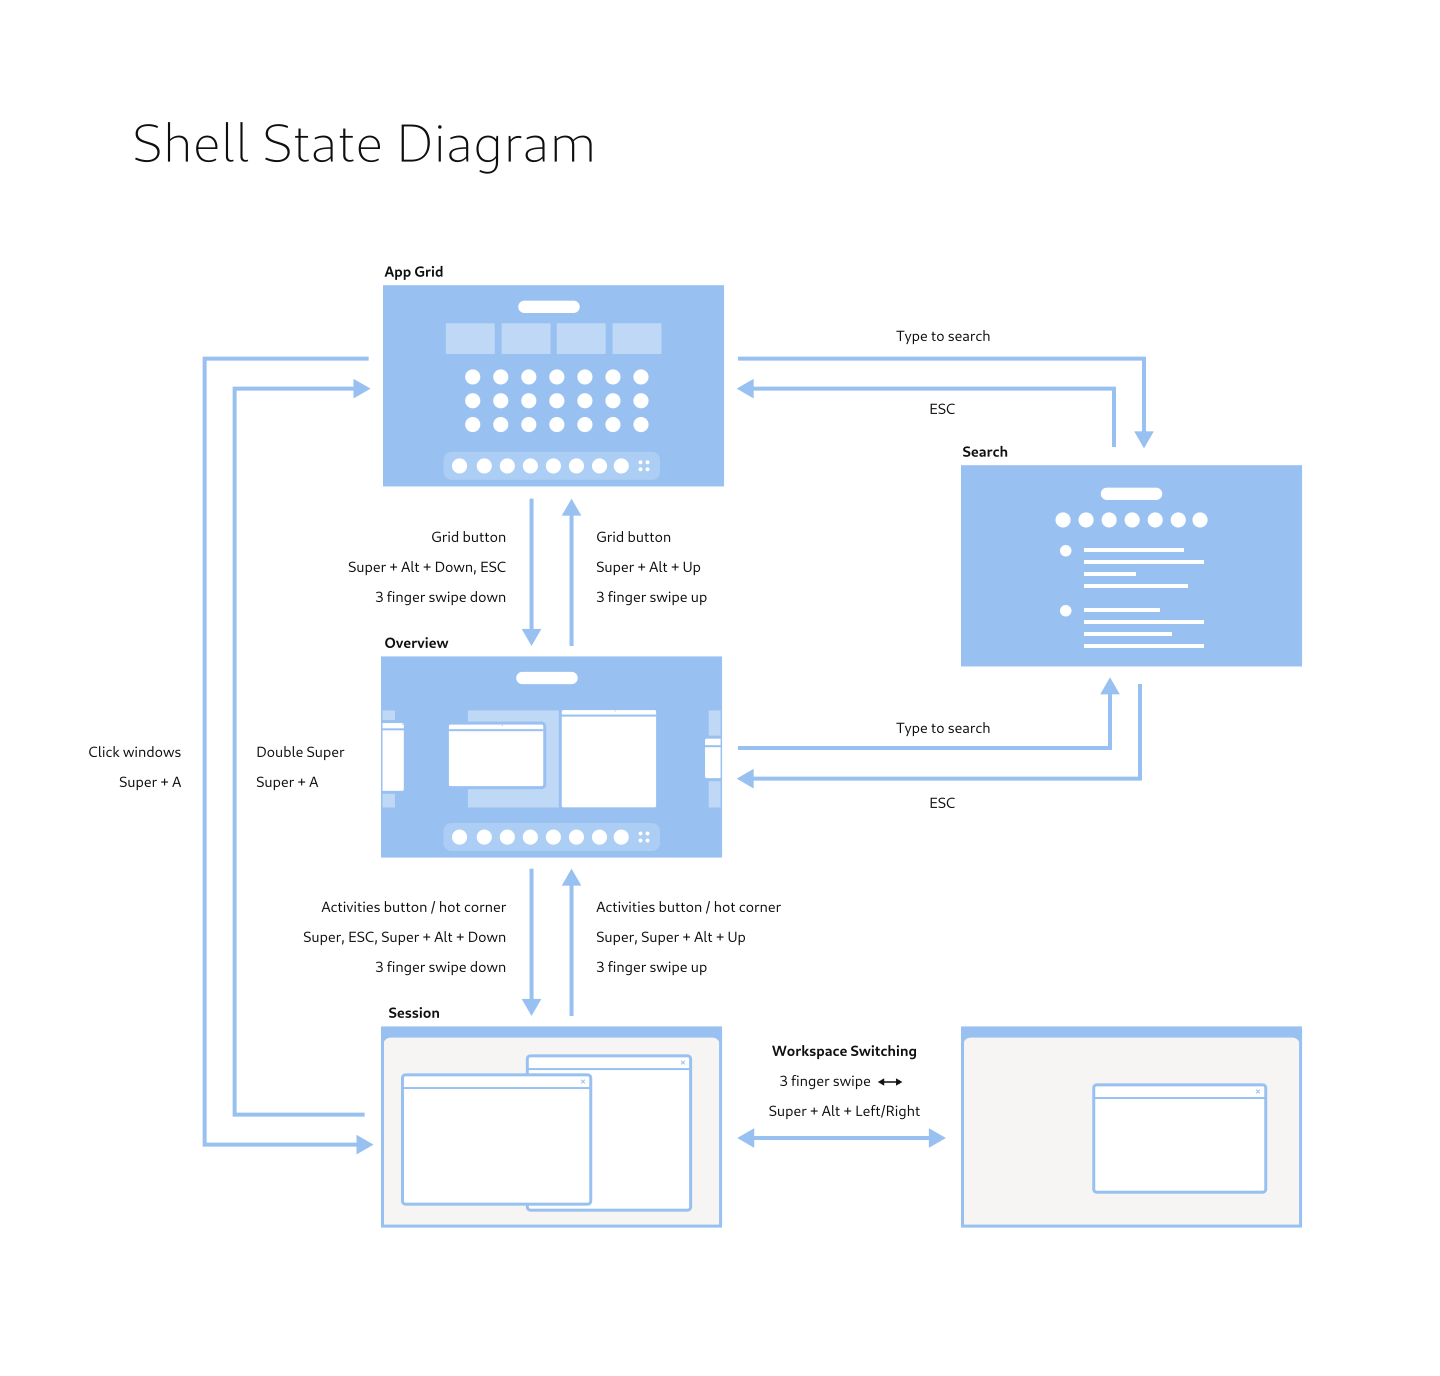 shell-state-diagram.png